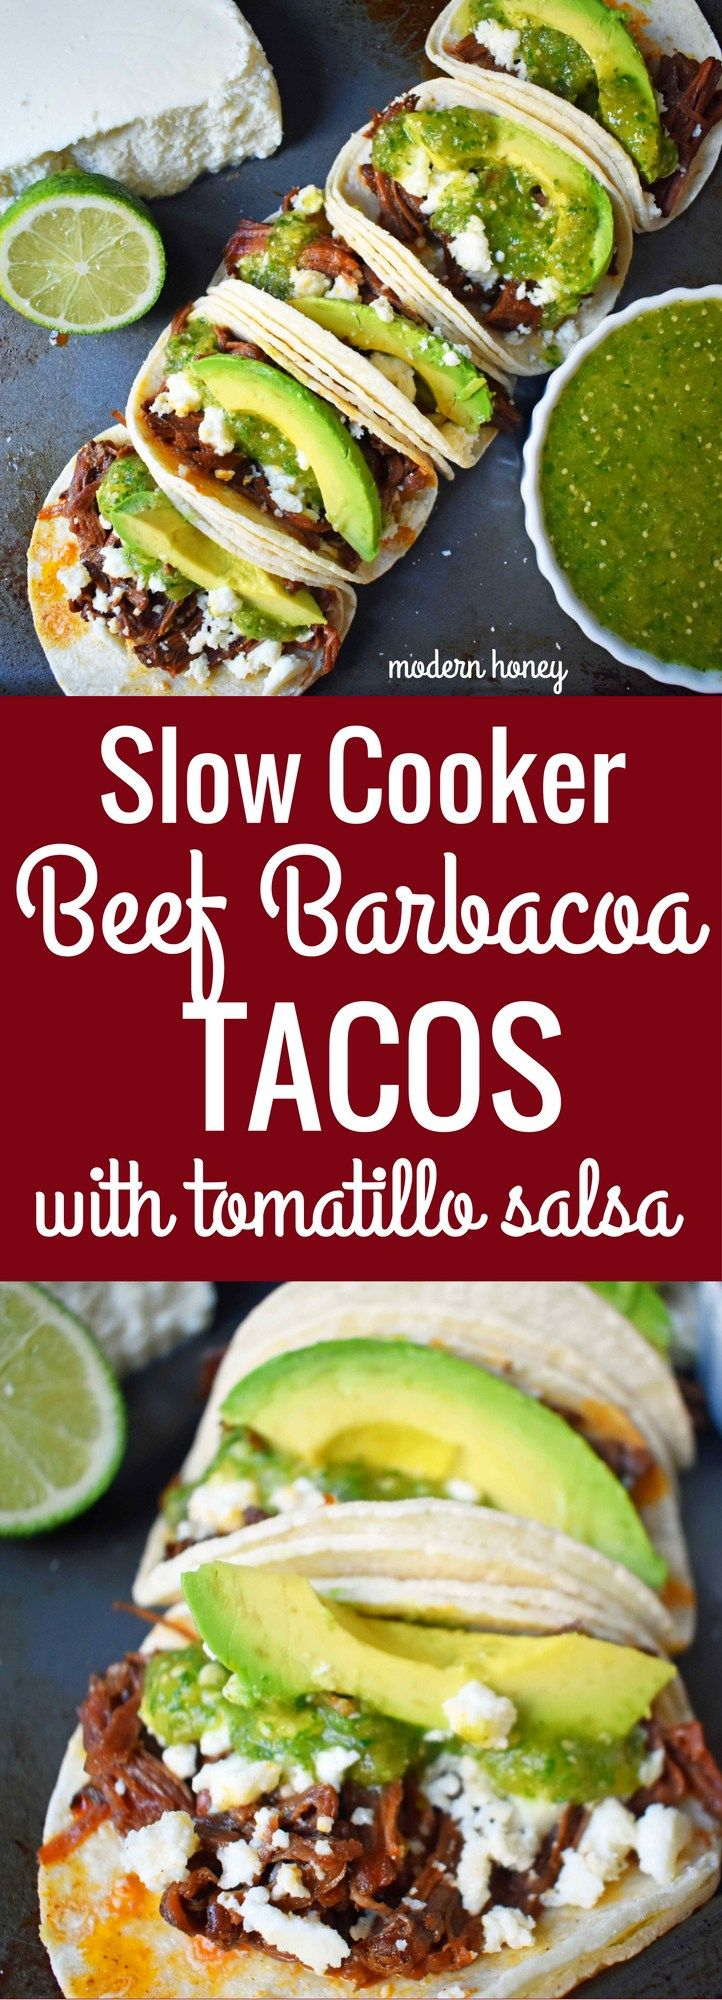 Slow Cooker Beef Barbacoa Tacos with Tomatillo Salsa | Modern Honey.  Meh.  Not my favorite.